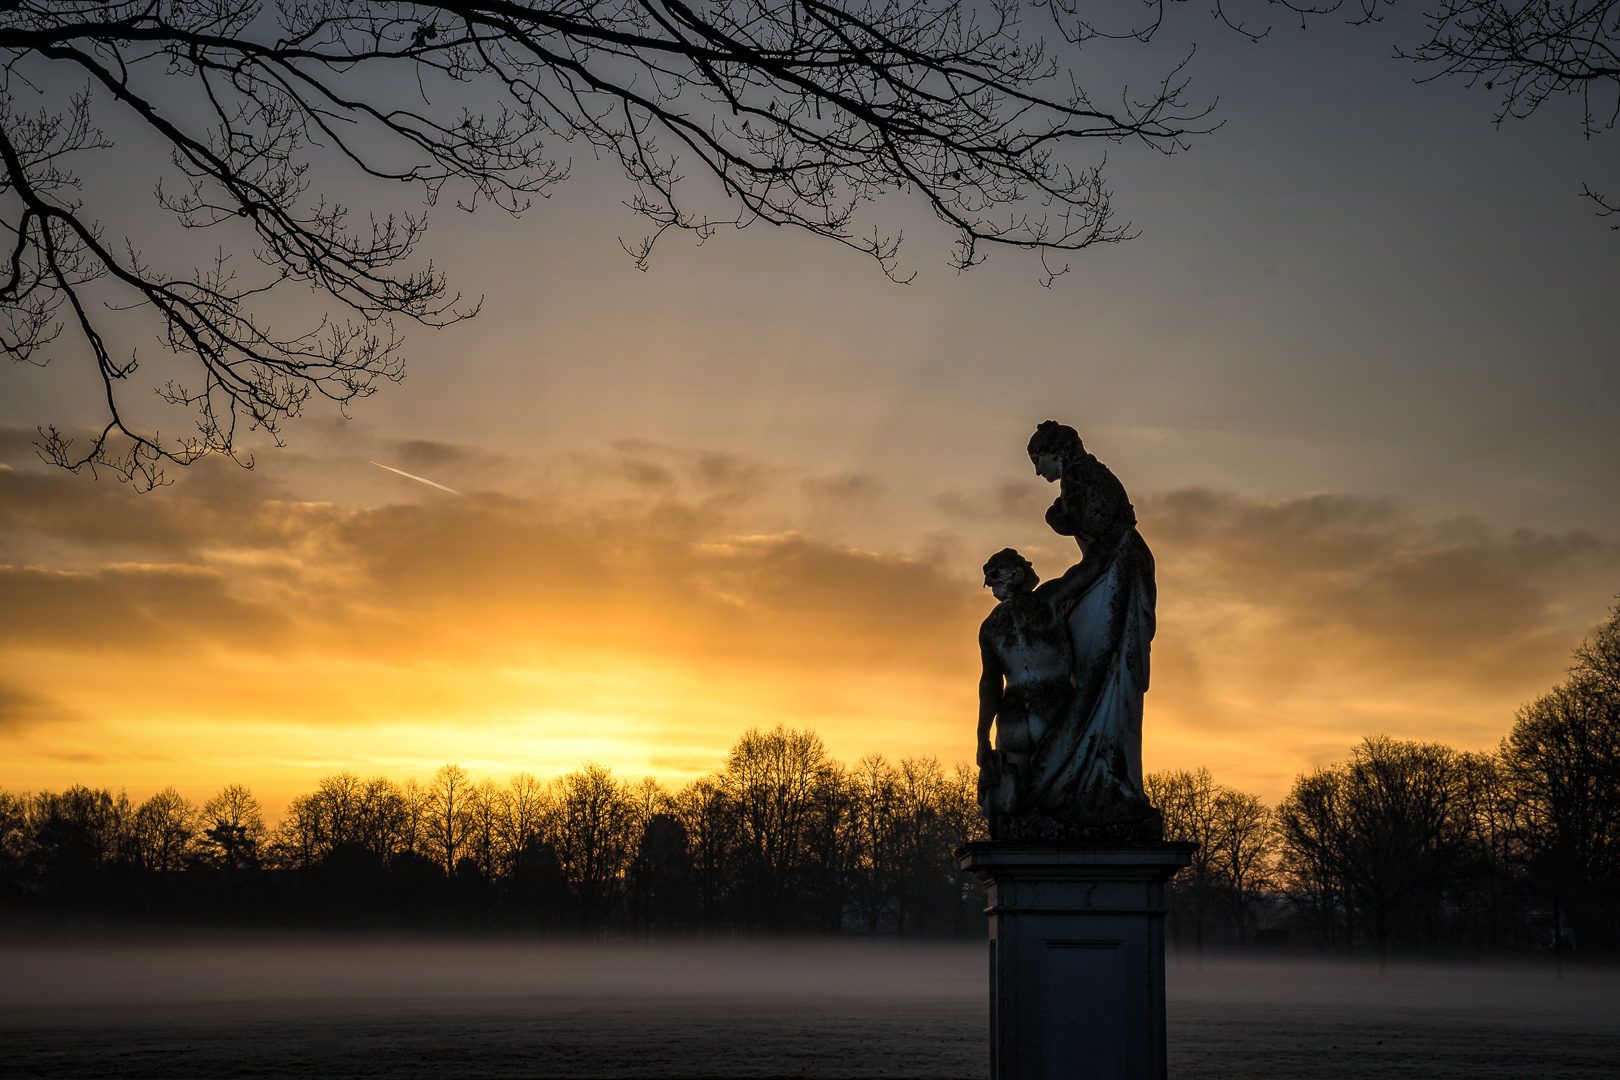 Orangerie Kassel - Fog with a burning sky...  Every month has its uniqueness in each region. Maybe in winter you don't have broad daylight or blue skies, but you have great sunrises with fog. This photo shows a statue from our park in Kassel, the Caritas Romana. At first I thought their story is about a love couple, and so the photo had a very romantiv touch with this burning sky. But then i read about the story of the Caritas Romana and it was about a woman who visited her father every day in the catacombs of the roman empire left to die without bread or water. She gave him to eat from her breast so he could survive, when the romans discovered her they were so overwhelmed by the story that they let him free. So now you can decide if this photo has a romantic touch or not :)  If you want to follow my other voyages in photography at Instagram, please check my other feeds :)  Cosplay Photography: @dont_fade_away_photography_cos  People & Portraits (my new one): @dont_fade_away_photography_ppl